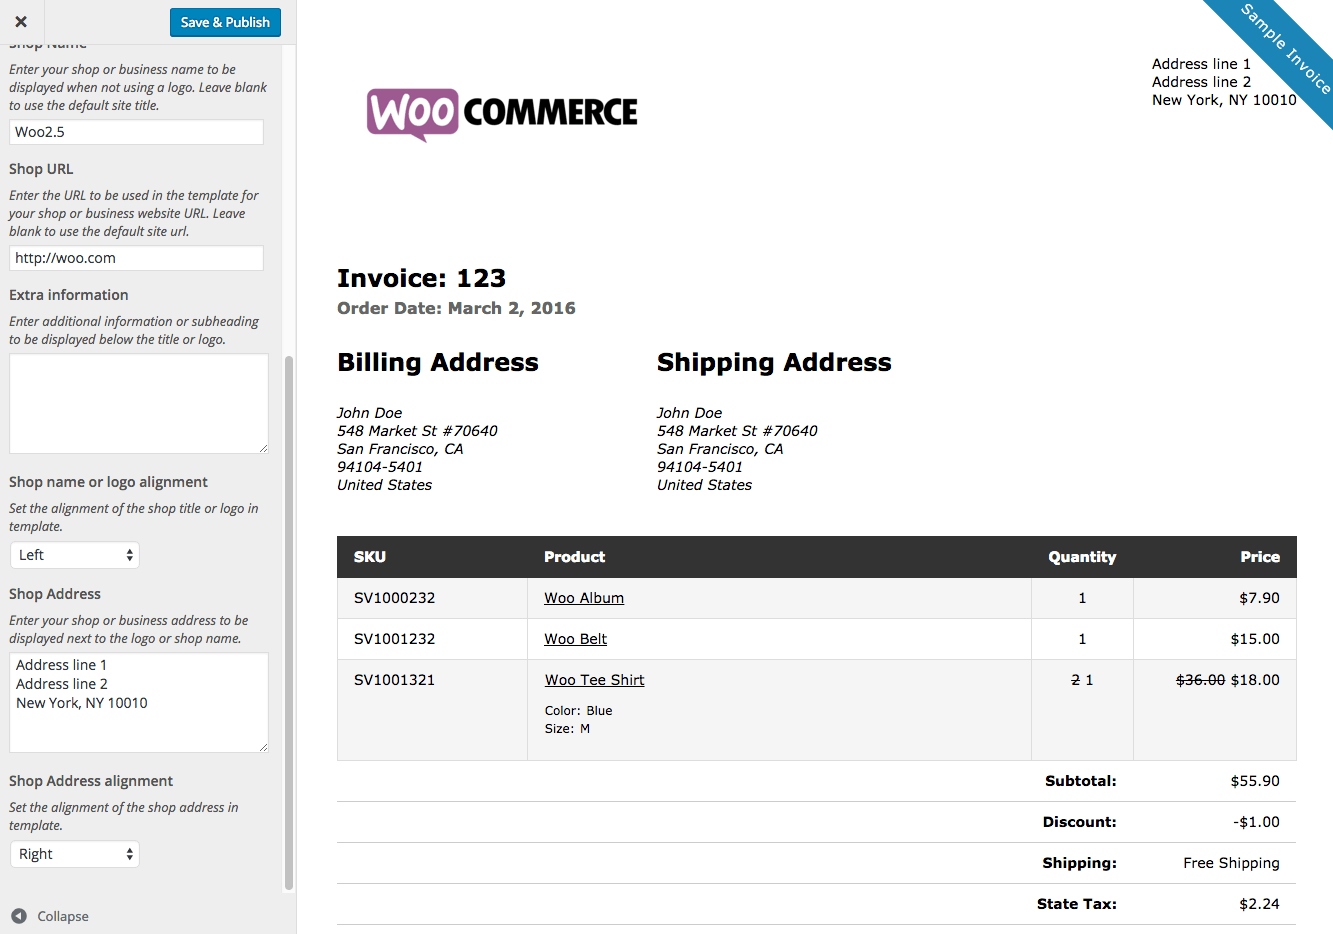 Helpingtohealus  Inspiring Woocommerce Print Invoices Amp Packing Lists  Woocommerce Docs With Inspiring Woocommerce Print Invoices  Packing Lists Customizer With Agreeable Cash Receipt Journal Example Also How Do You Make A Receipt In Addition Medicare Receipts And Received Payment Receipt Format As Well As Taxi Receipts Template Additionally Certified Mail Rates Return Receipt From Docswoocommercecom With Helpingtohealus  Inspiring Woocommerce Print Invoices Amp Packing Lists  Woocommerce Docs With Agreeable Woocommerce Print Invoices  Packing Lists Customizer And Inspiring Cash Receipt Journal Example Also How Do You Make A Receipt In Addition Medicare Receipts From Docswoocommercecom